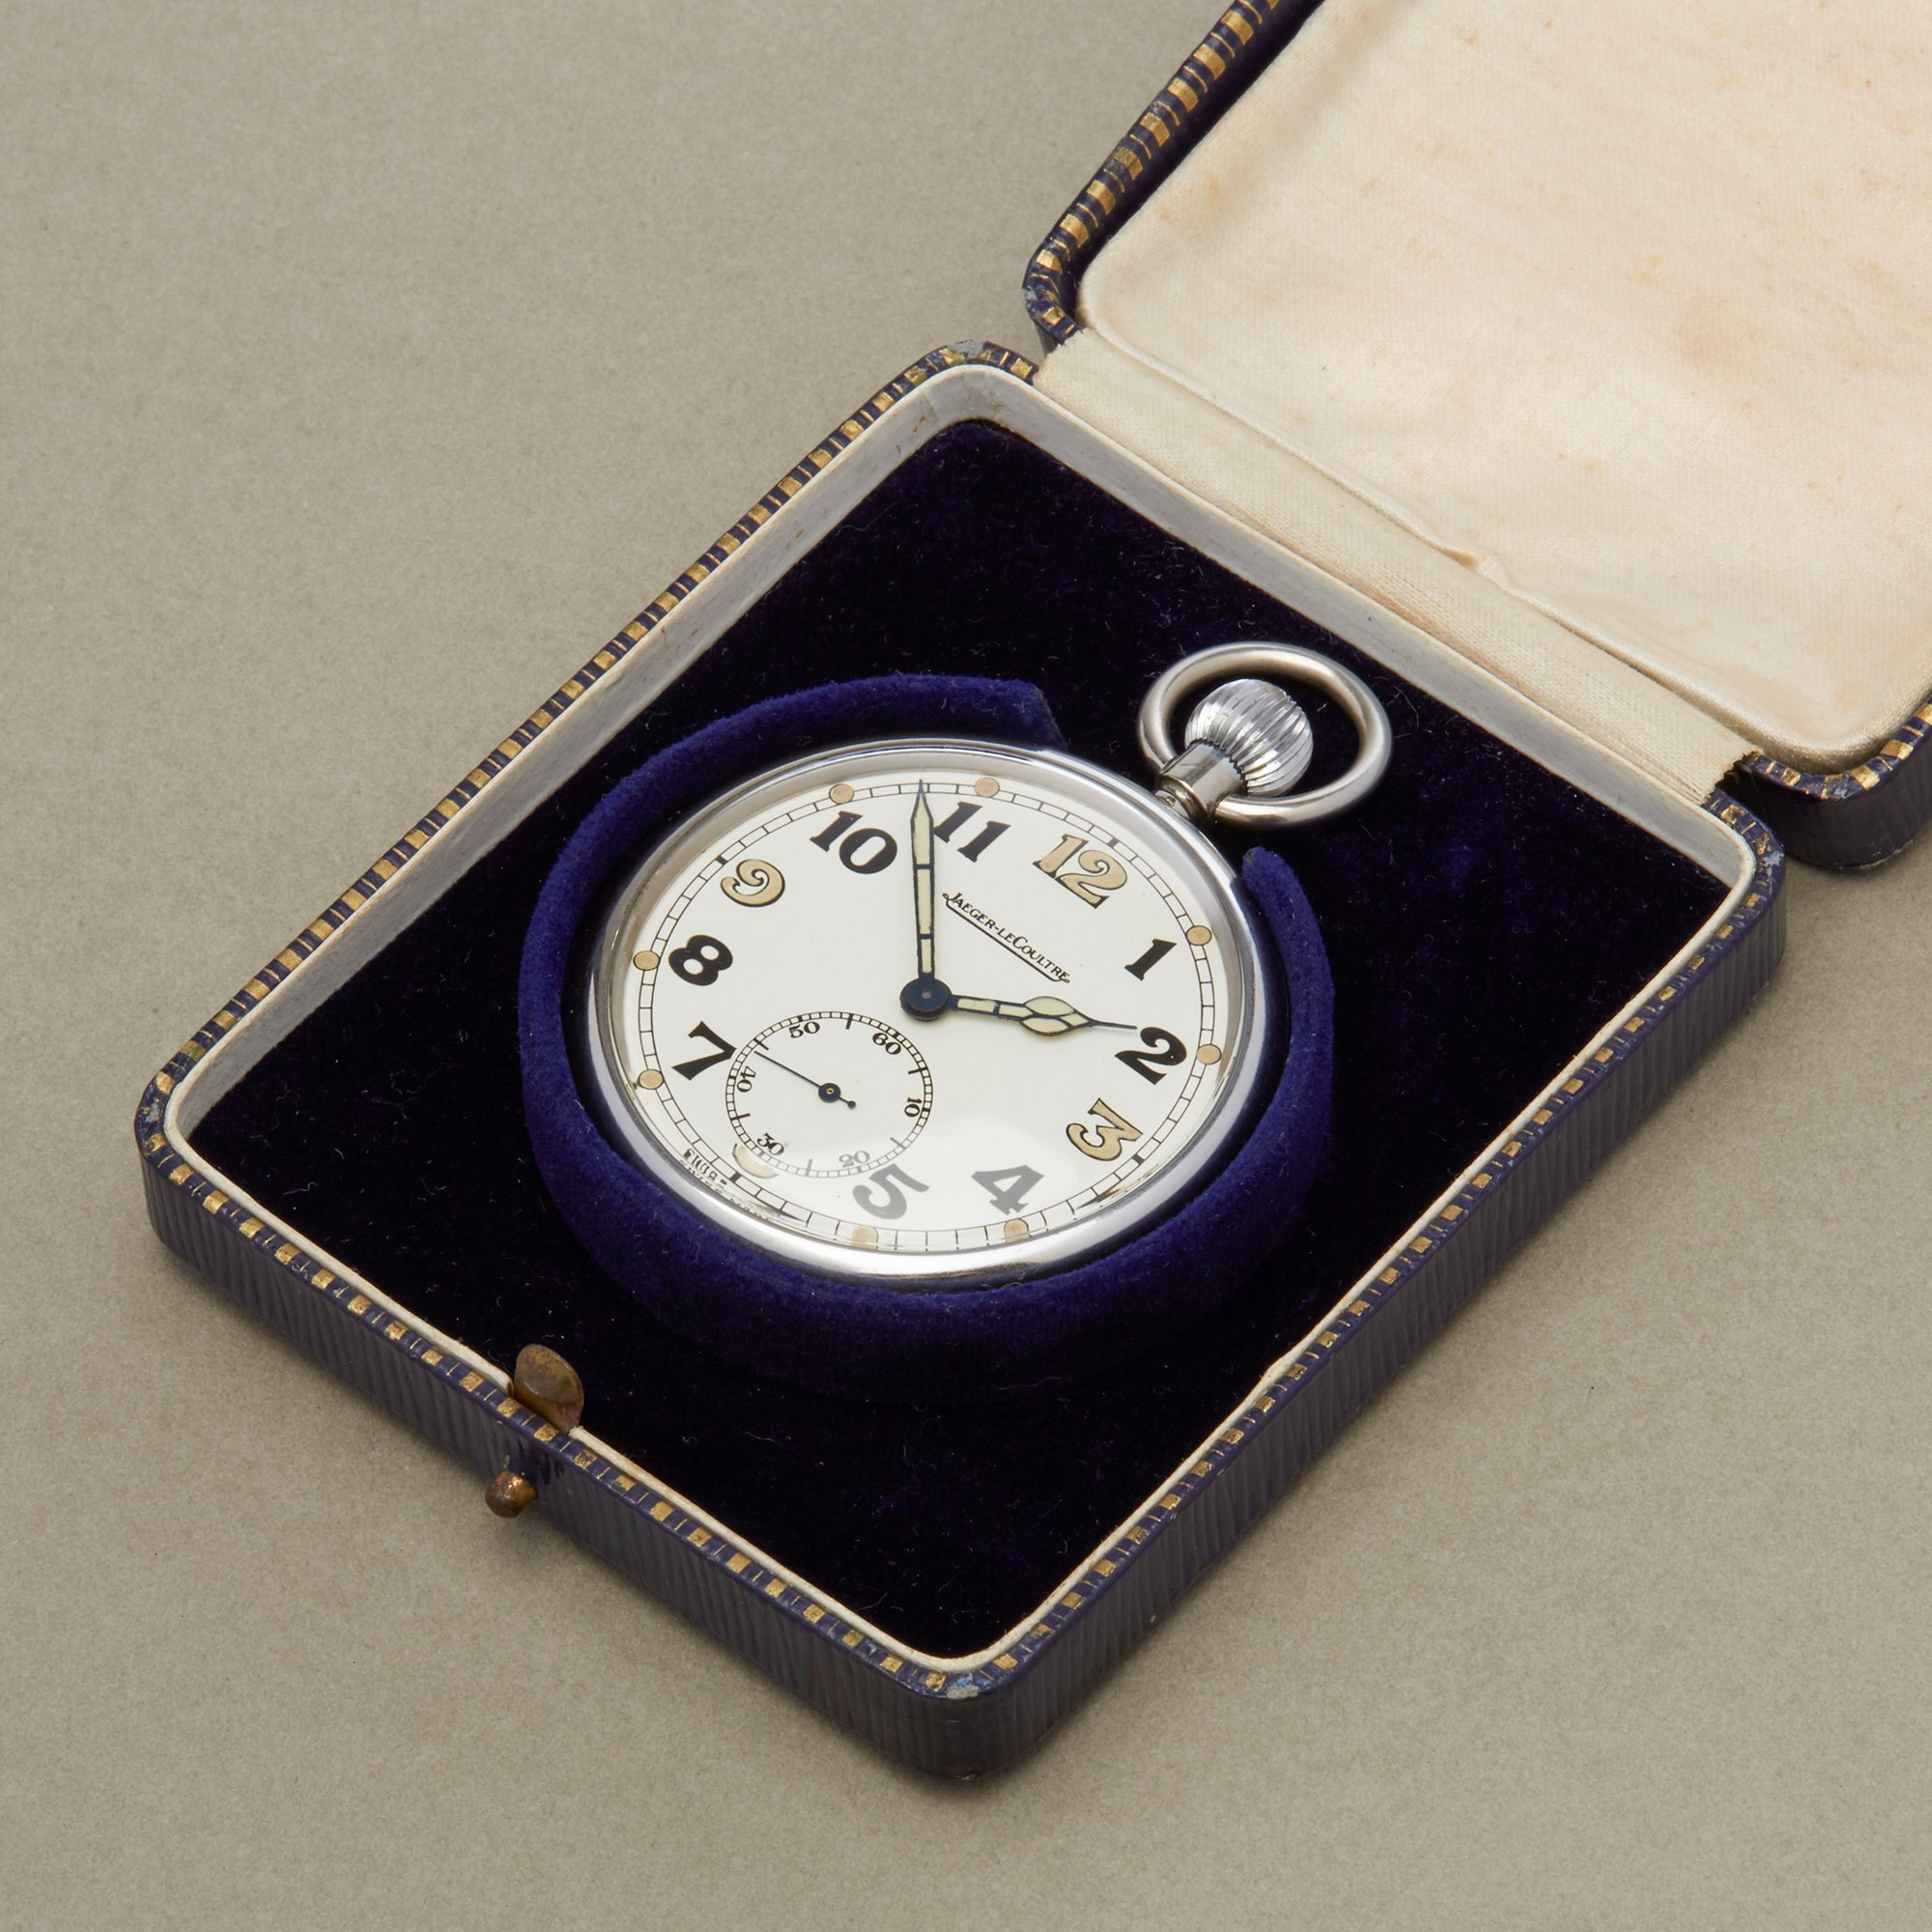 Jaeger-LeCoultre Pocket Watch G.S.T.P Military pocket watch Roestvrij Staal 467/2